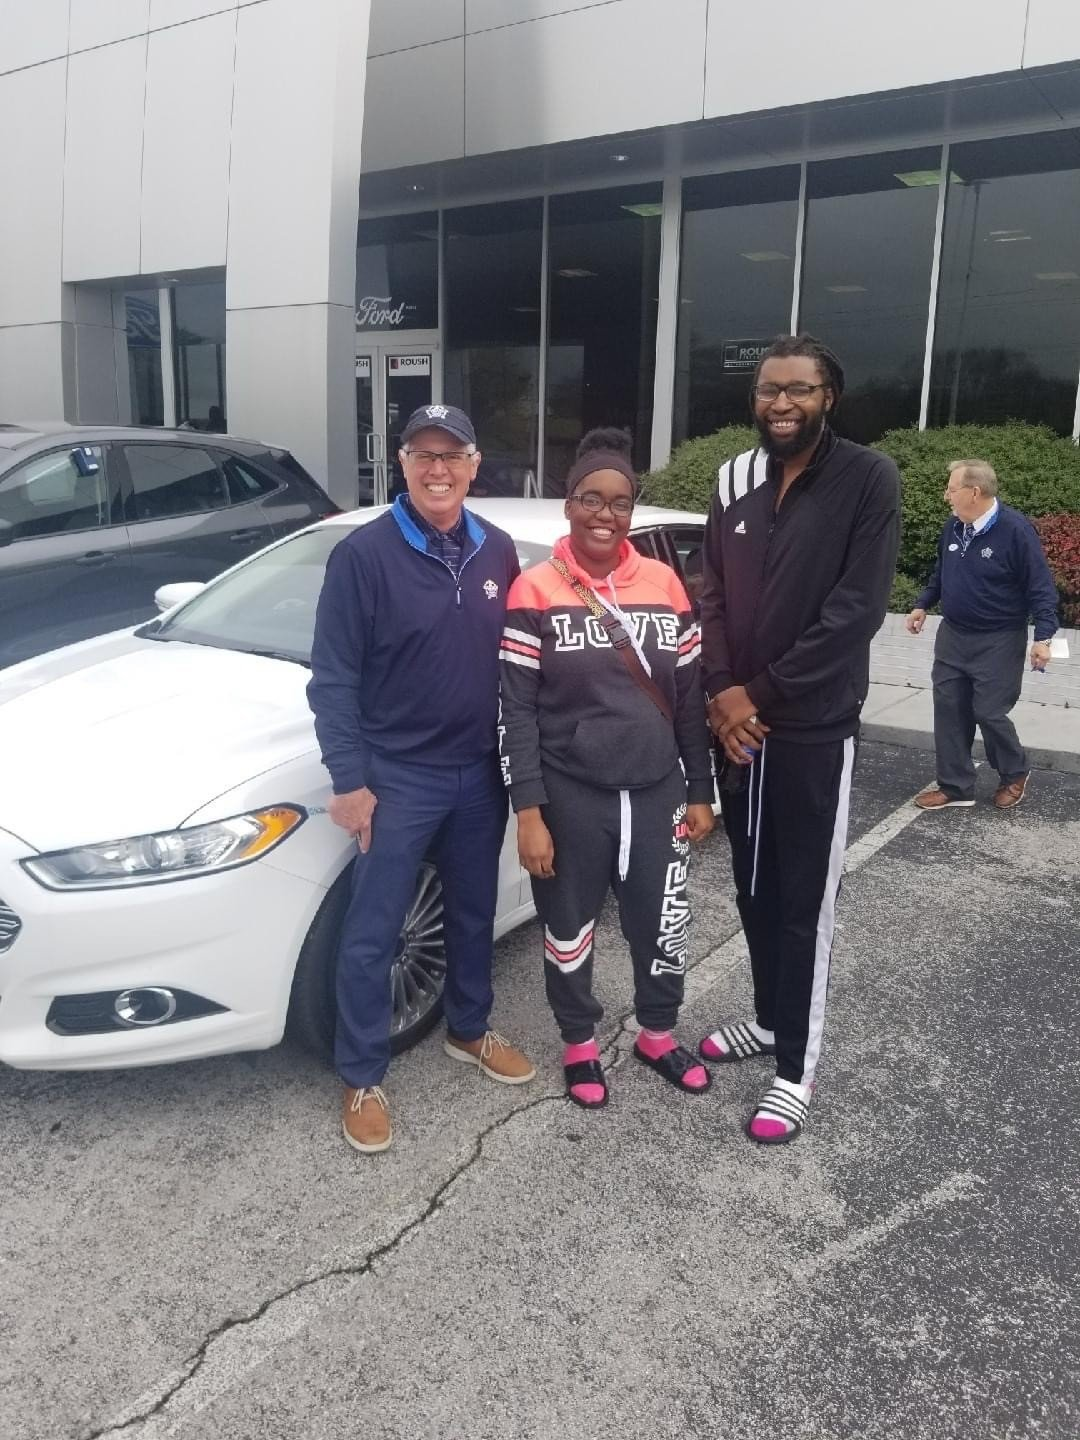 buying a white ford focus at Marshal Mize Ford in Chattanooga